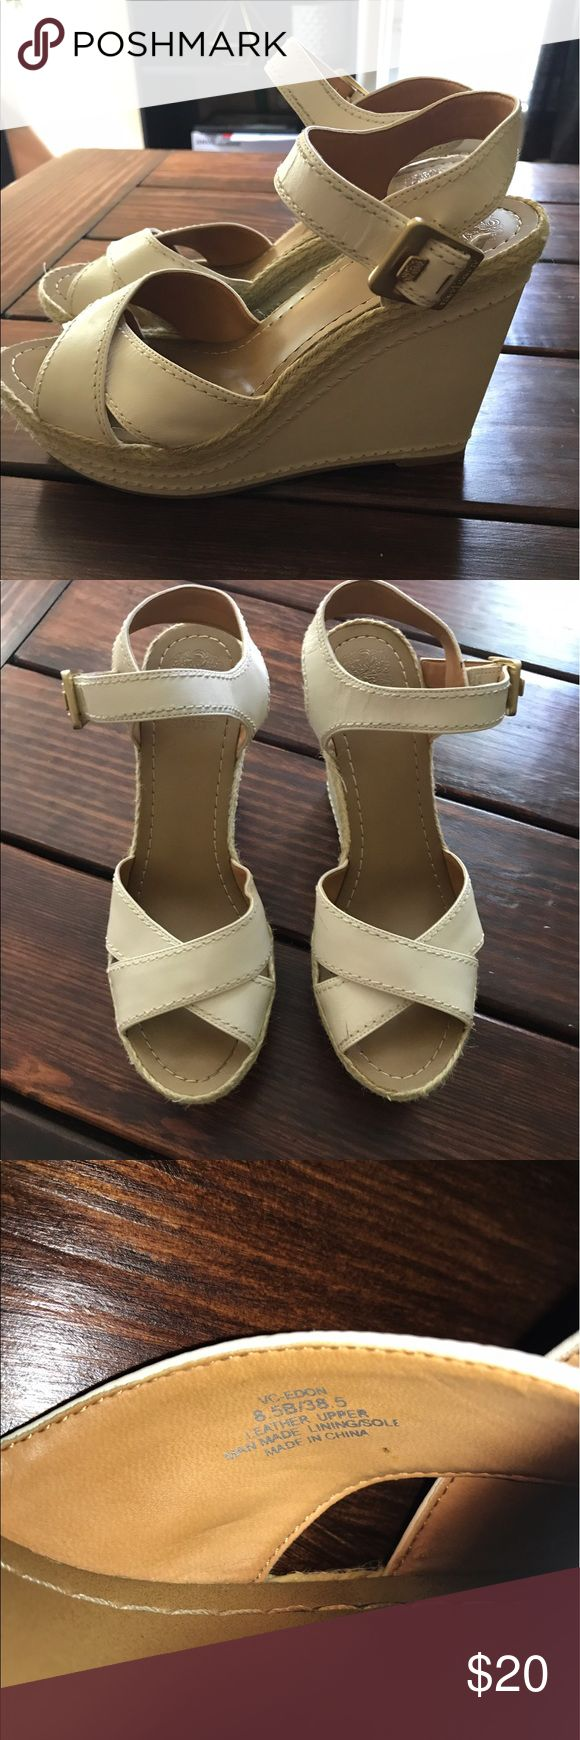 Vince Camuto cream wedge These are cute cream wedges with gold accent. Size 8.5 Vince Camuto Shoes Wedges